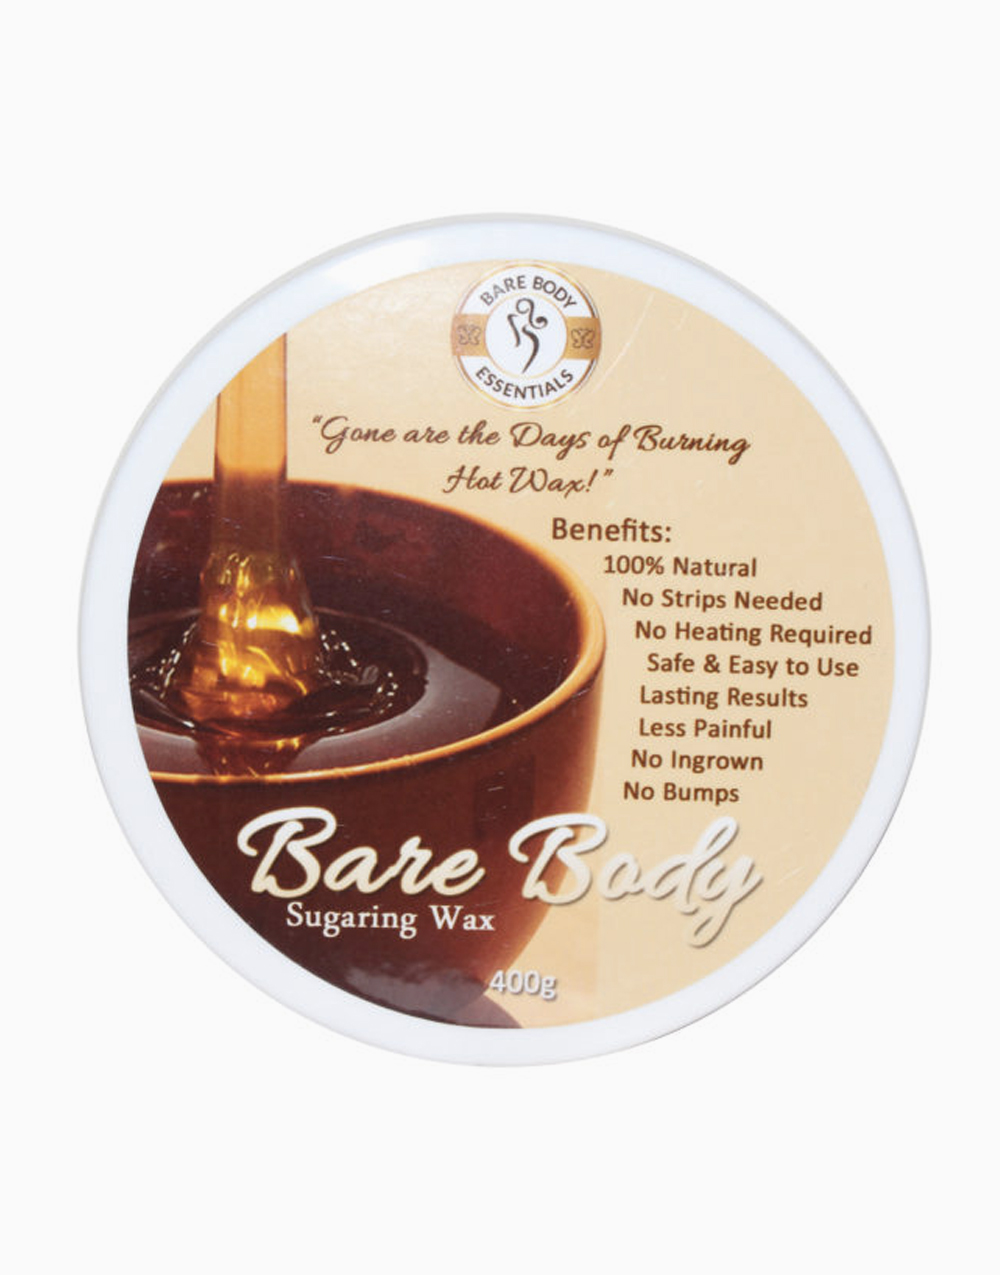 Bare Body Sugaring Wax (400g) by Bare Body Essentials | Regular